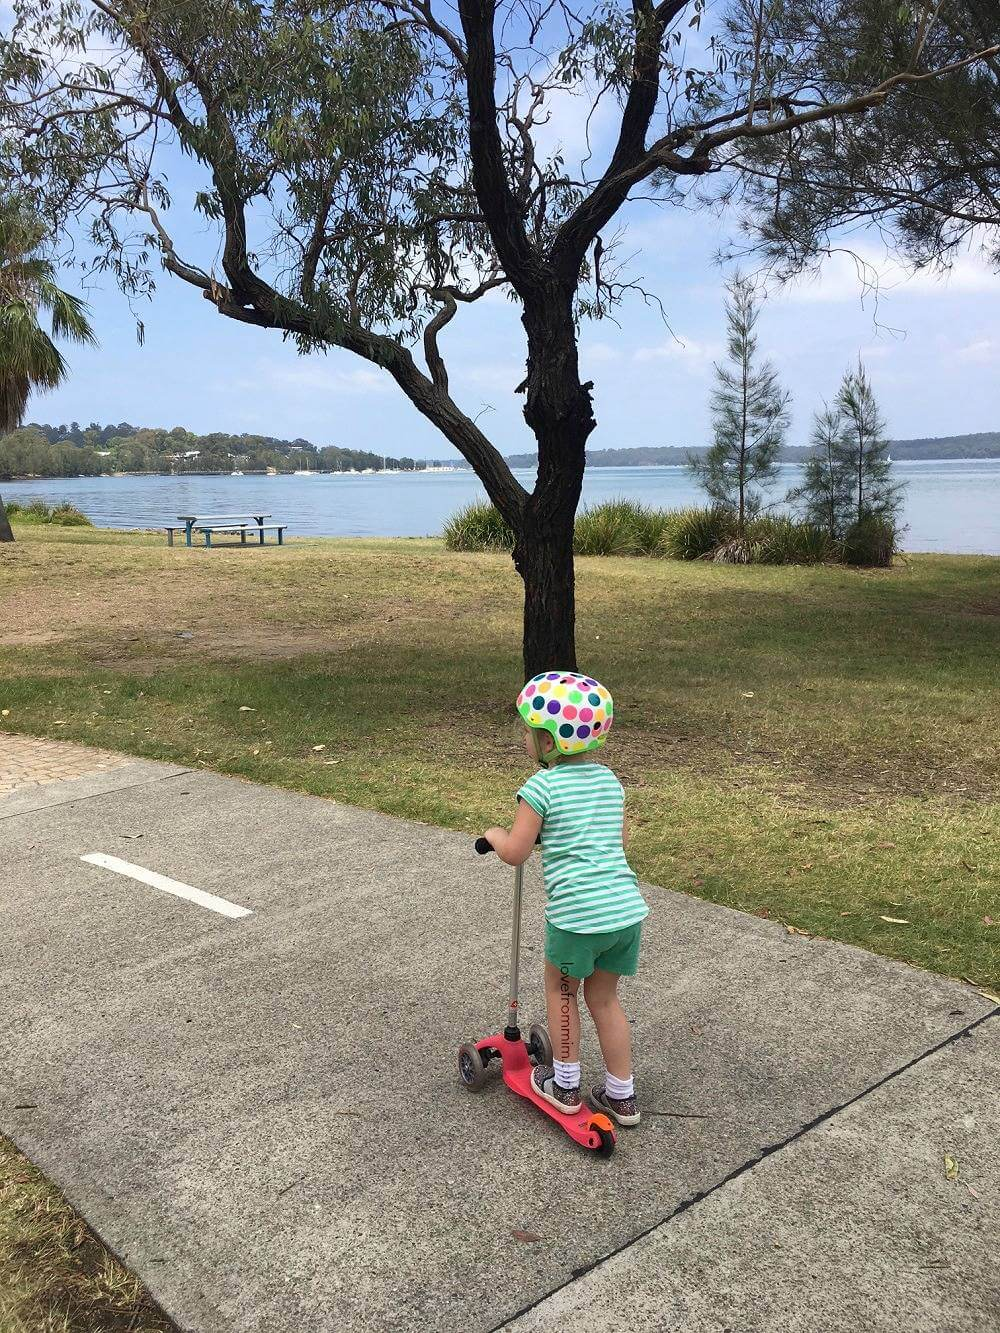 Best Places to Scoot: Warners Bay, NSW - lovefrommim.com Love from Mim Best places to scoot in Newcastle Best places to scoot in NSW Best places to scoot near Sydney Micro Scooters Review Micro Scooters Mini Micro Deluxe Review Where to scoot with kids in NSW Warners Bay Foreshore